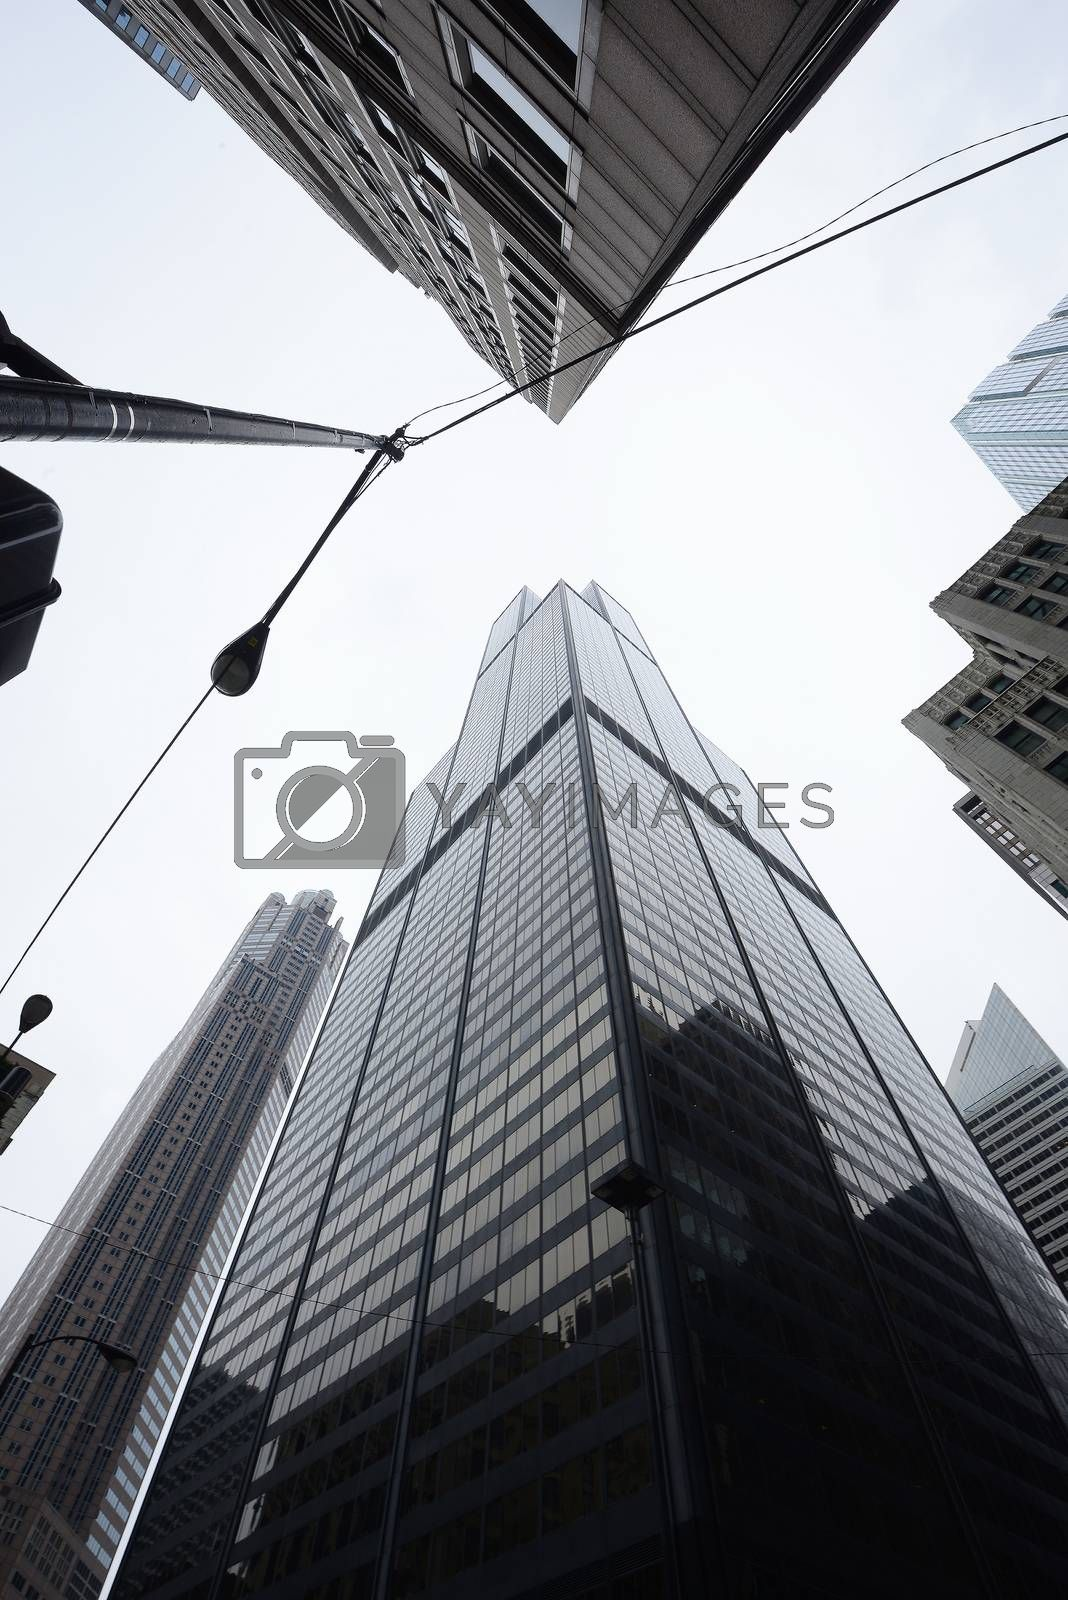 Royalty free image of tall building by porbital